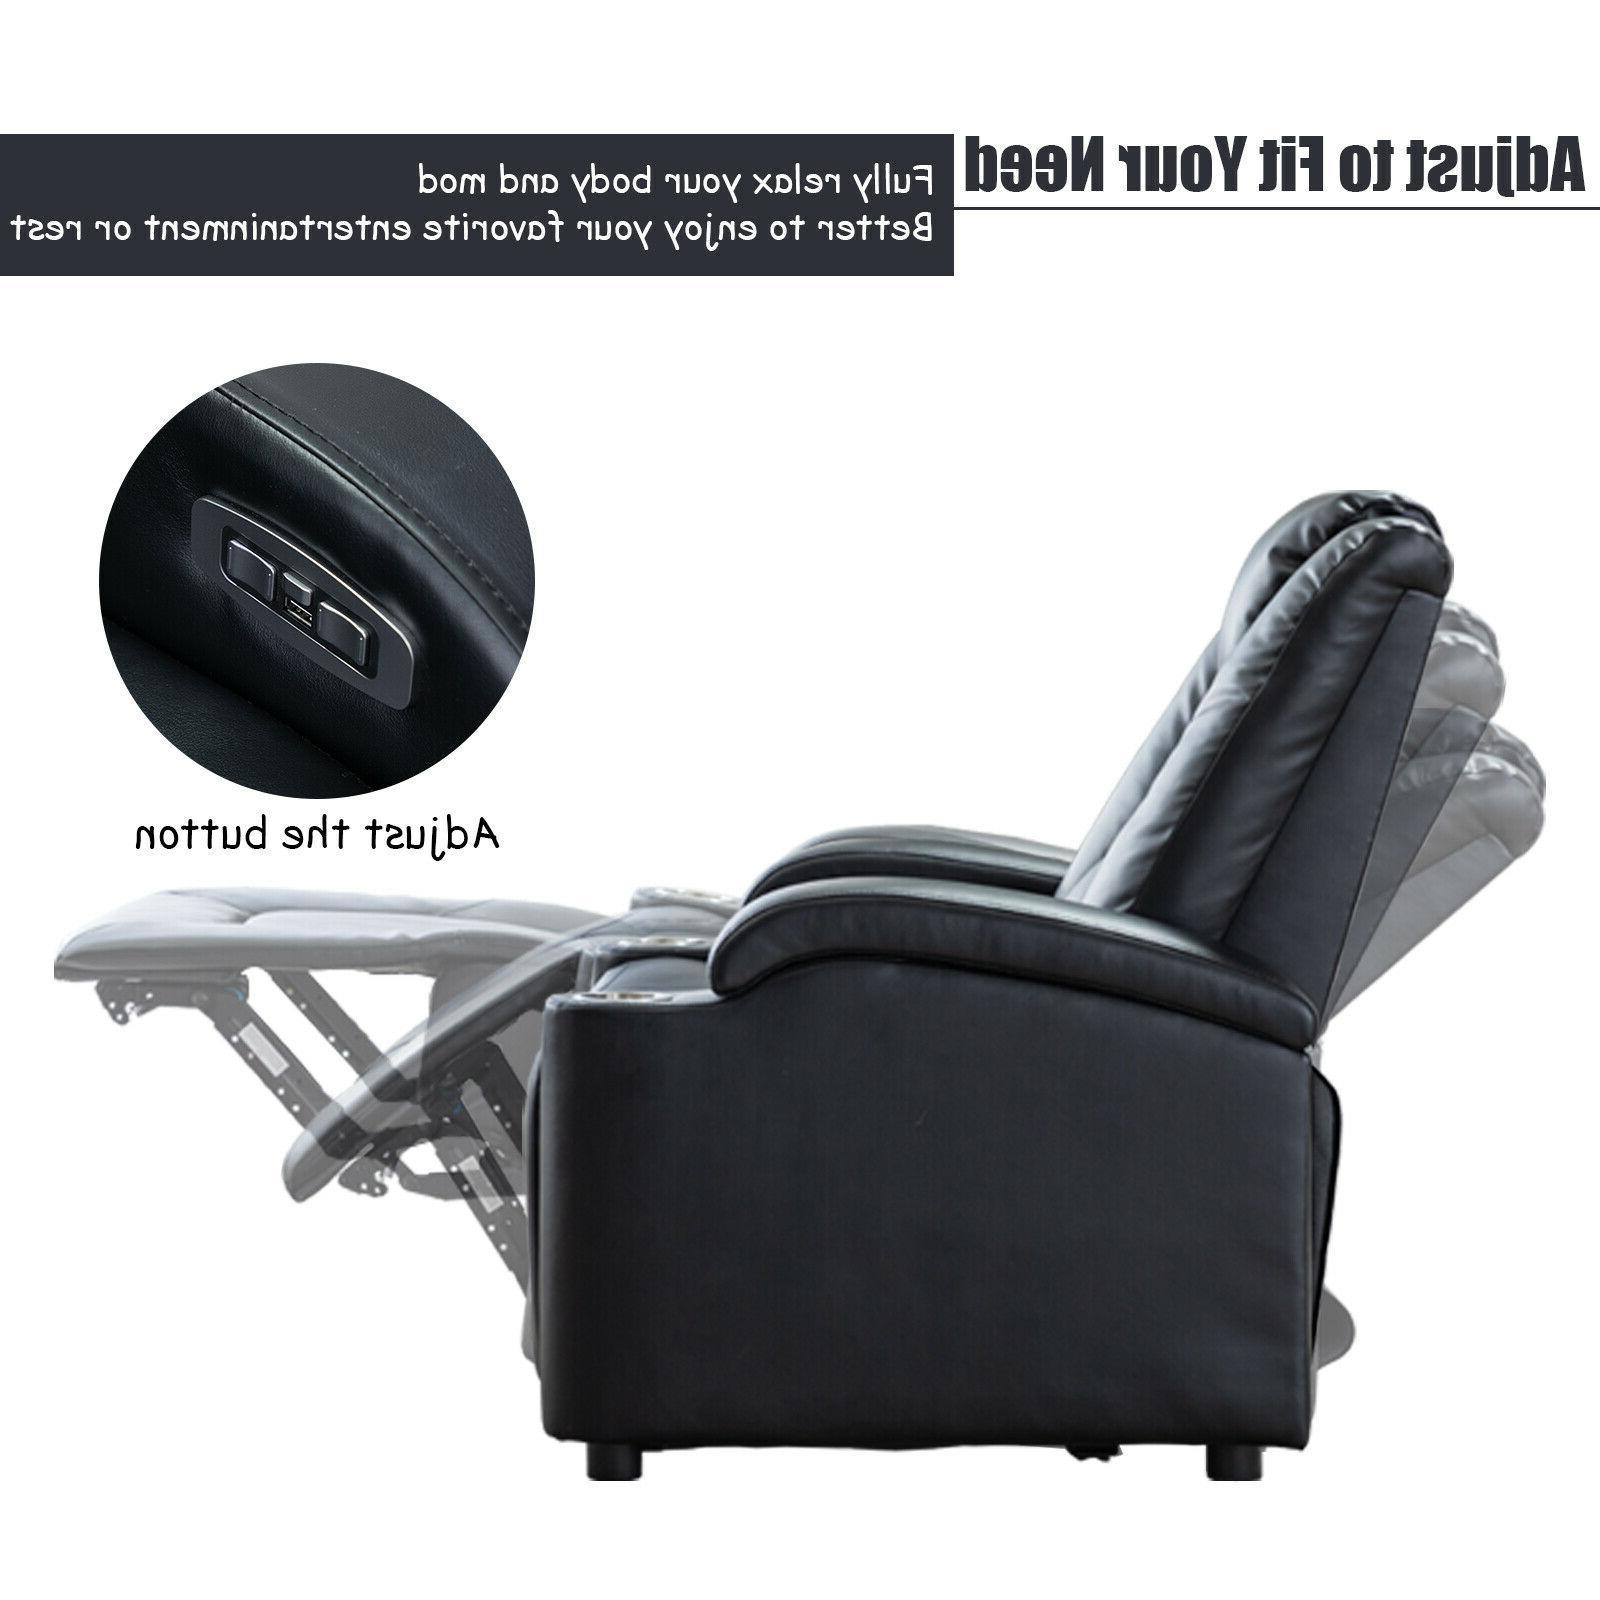 Black Chair with USB Theater Seating Arm Storage